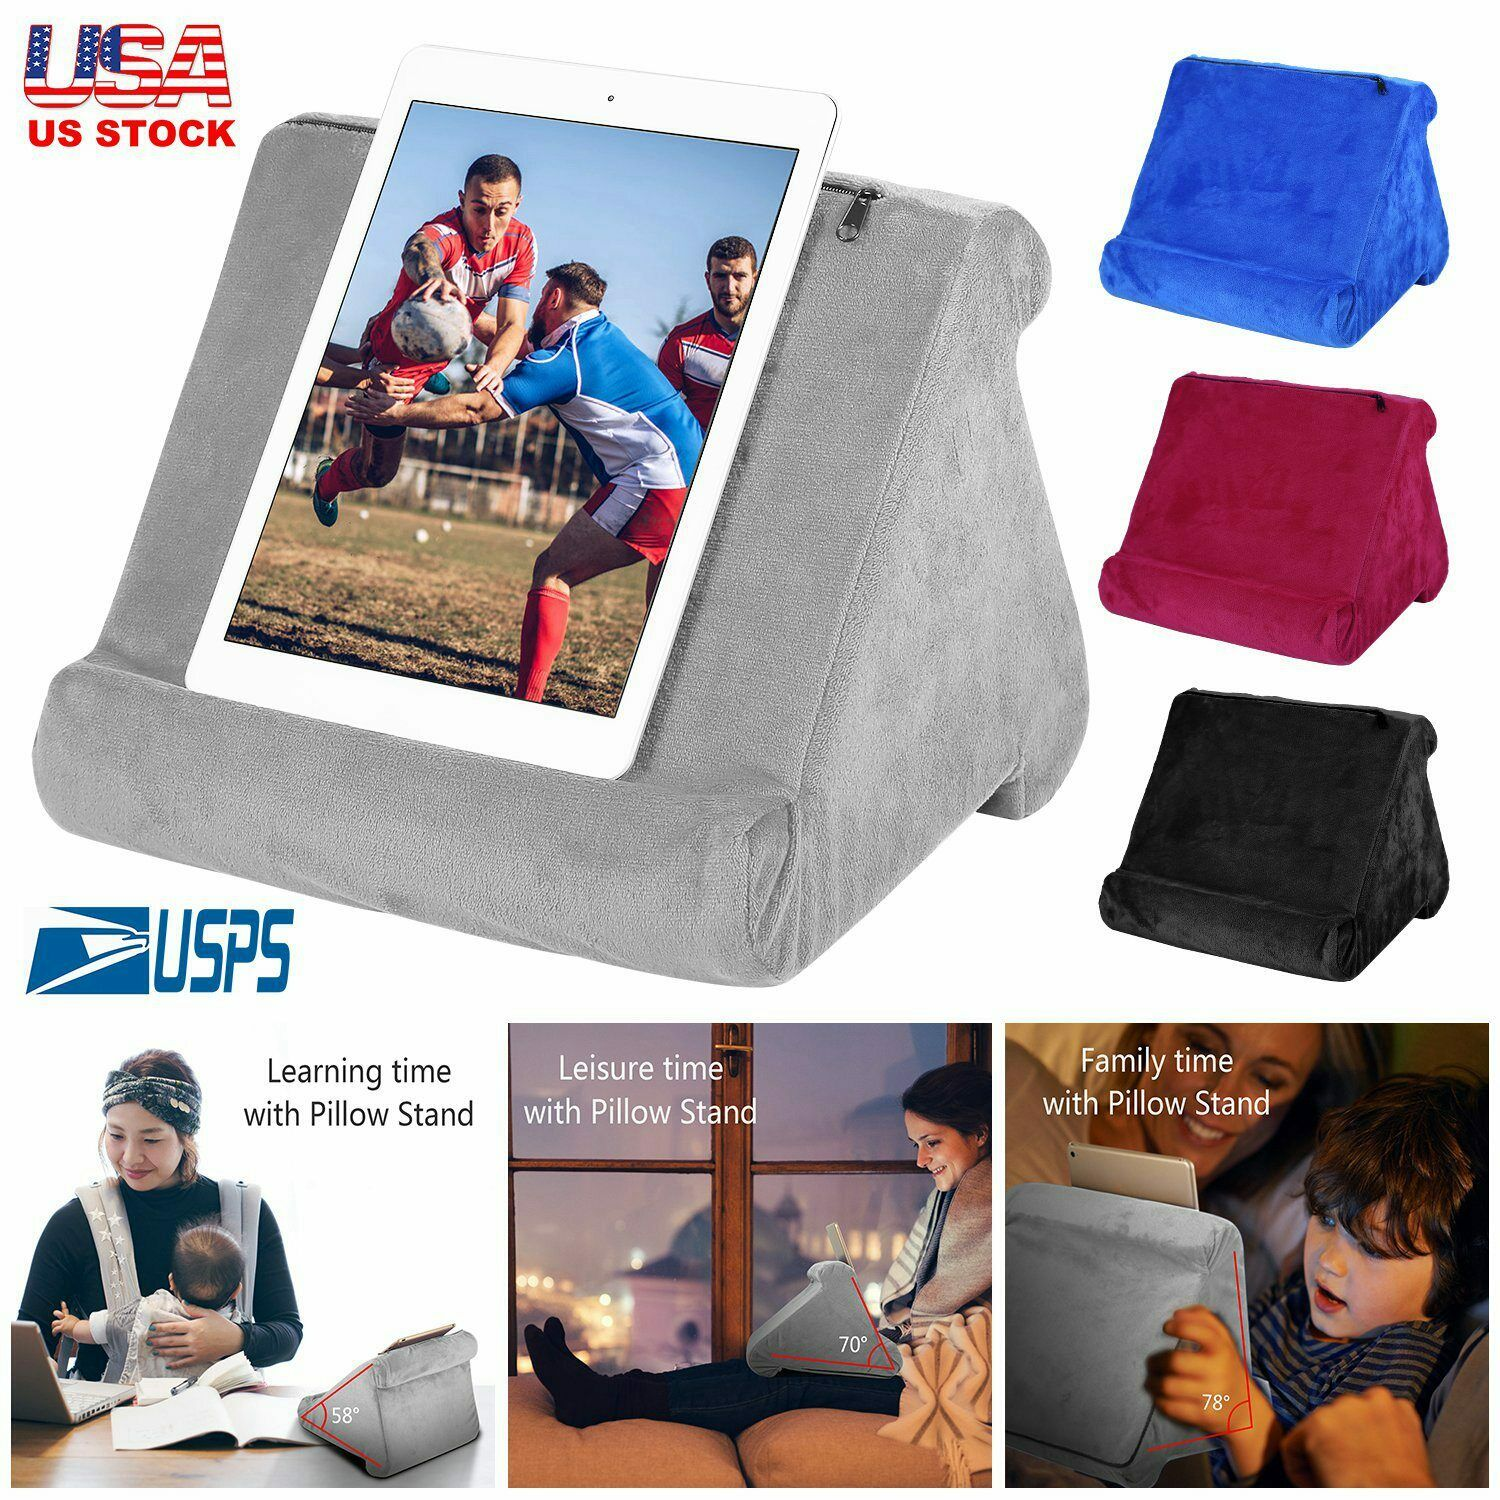 Blue Black Tablet Pillow Stand Holder For Ipad Bed Lap Reading Cushion For Sale Online Ebay